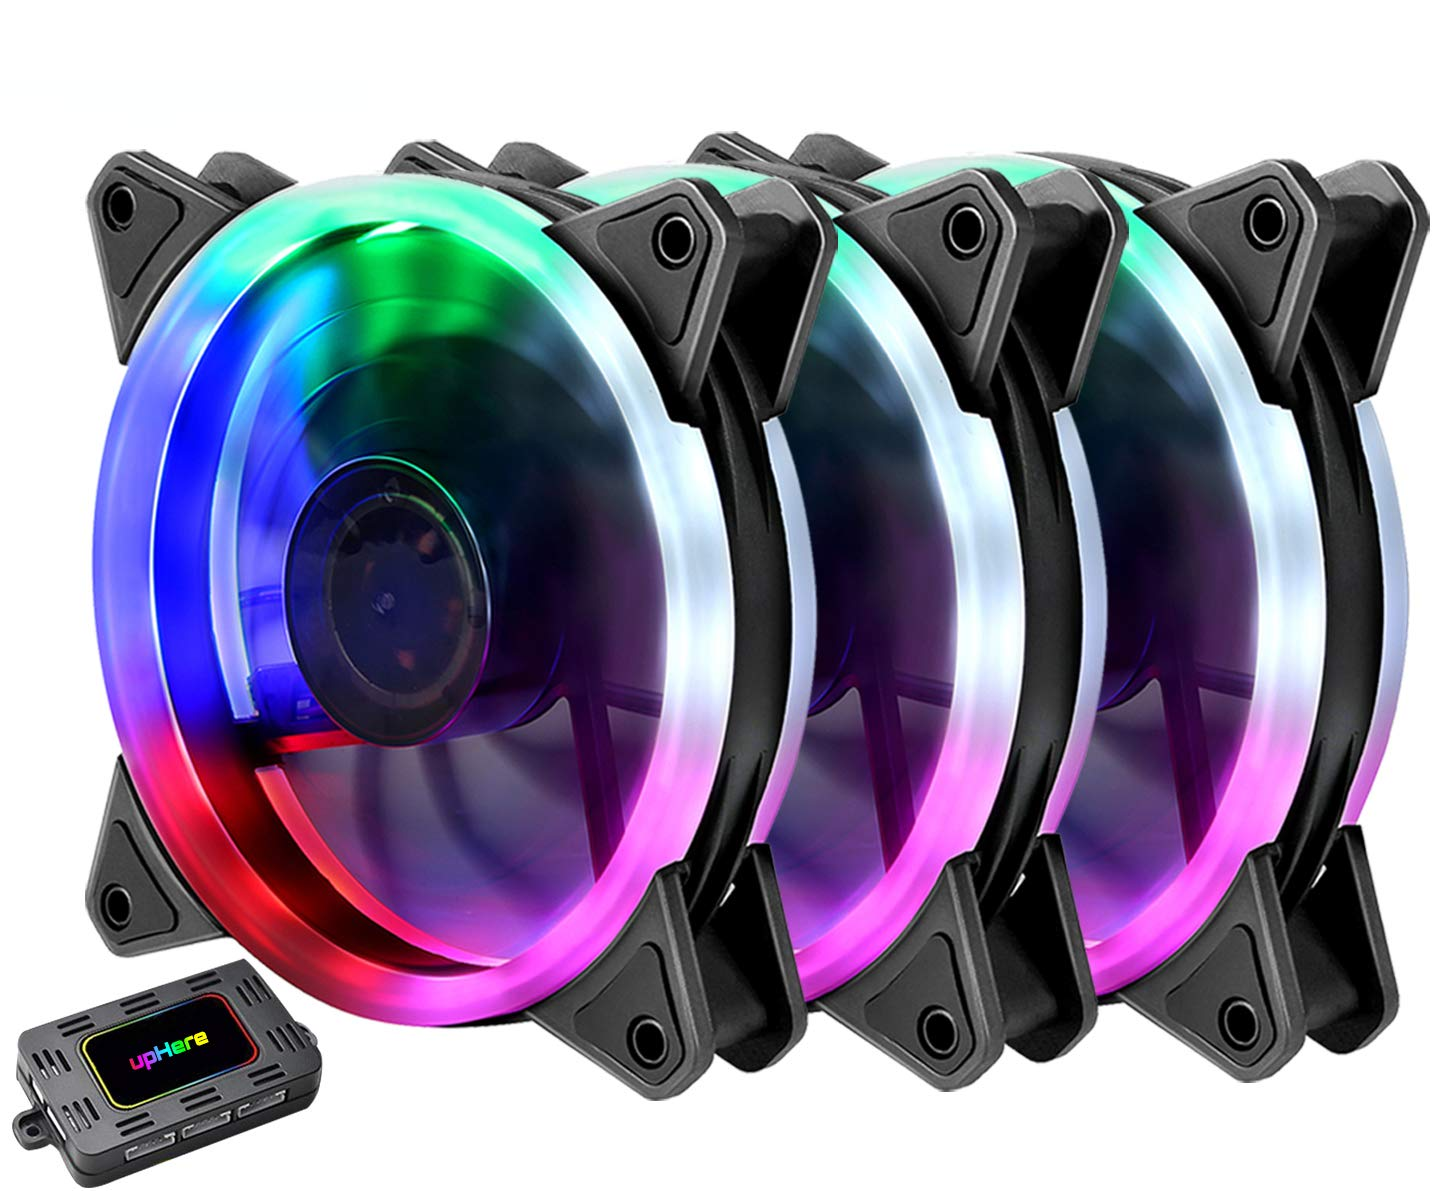 upHere 3-Pack Wireless RGB LED 120mm Case Fan,Quiet Edition High Airflow Adjustable Color LED Case Fan for PC Cases, CPU Coolers,Radiators system by upHere (Image #1)